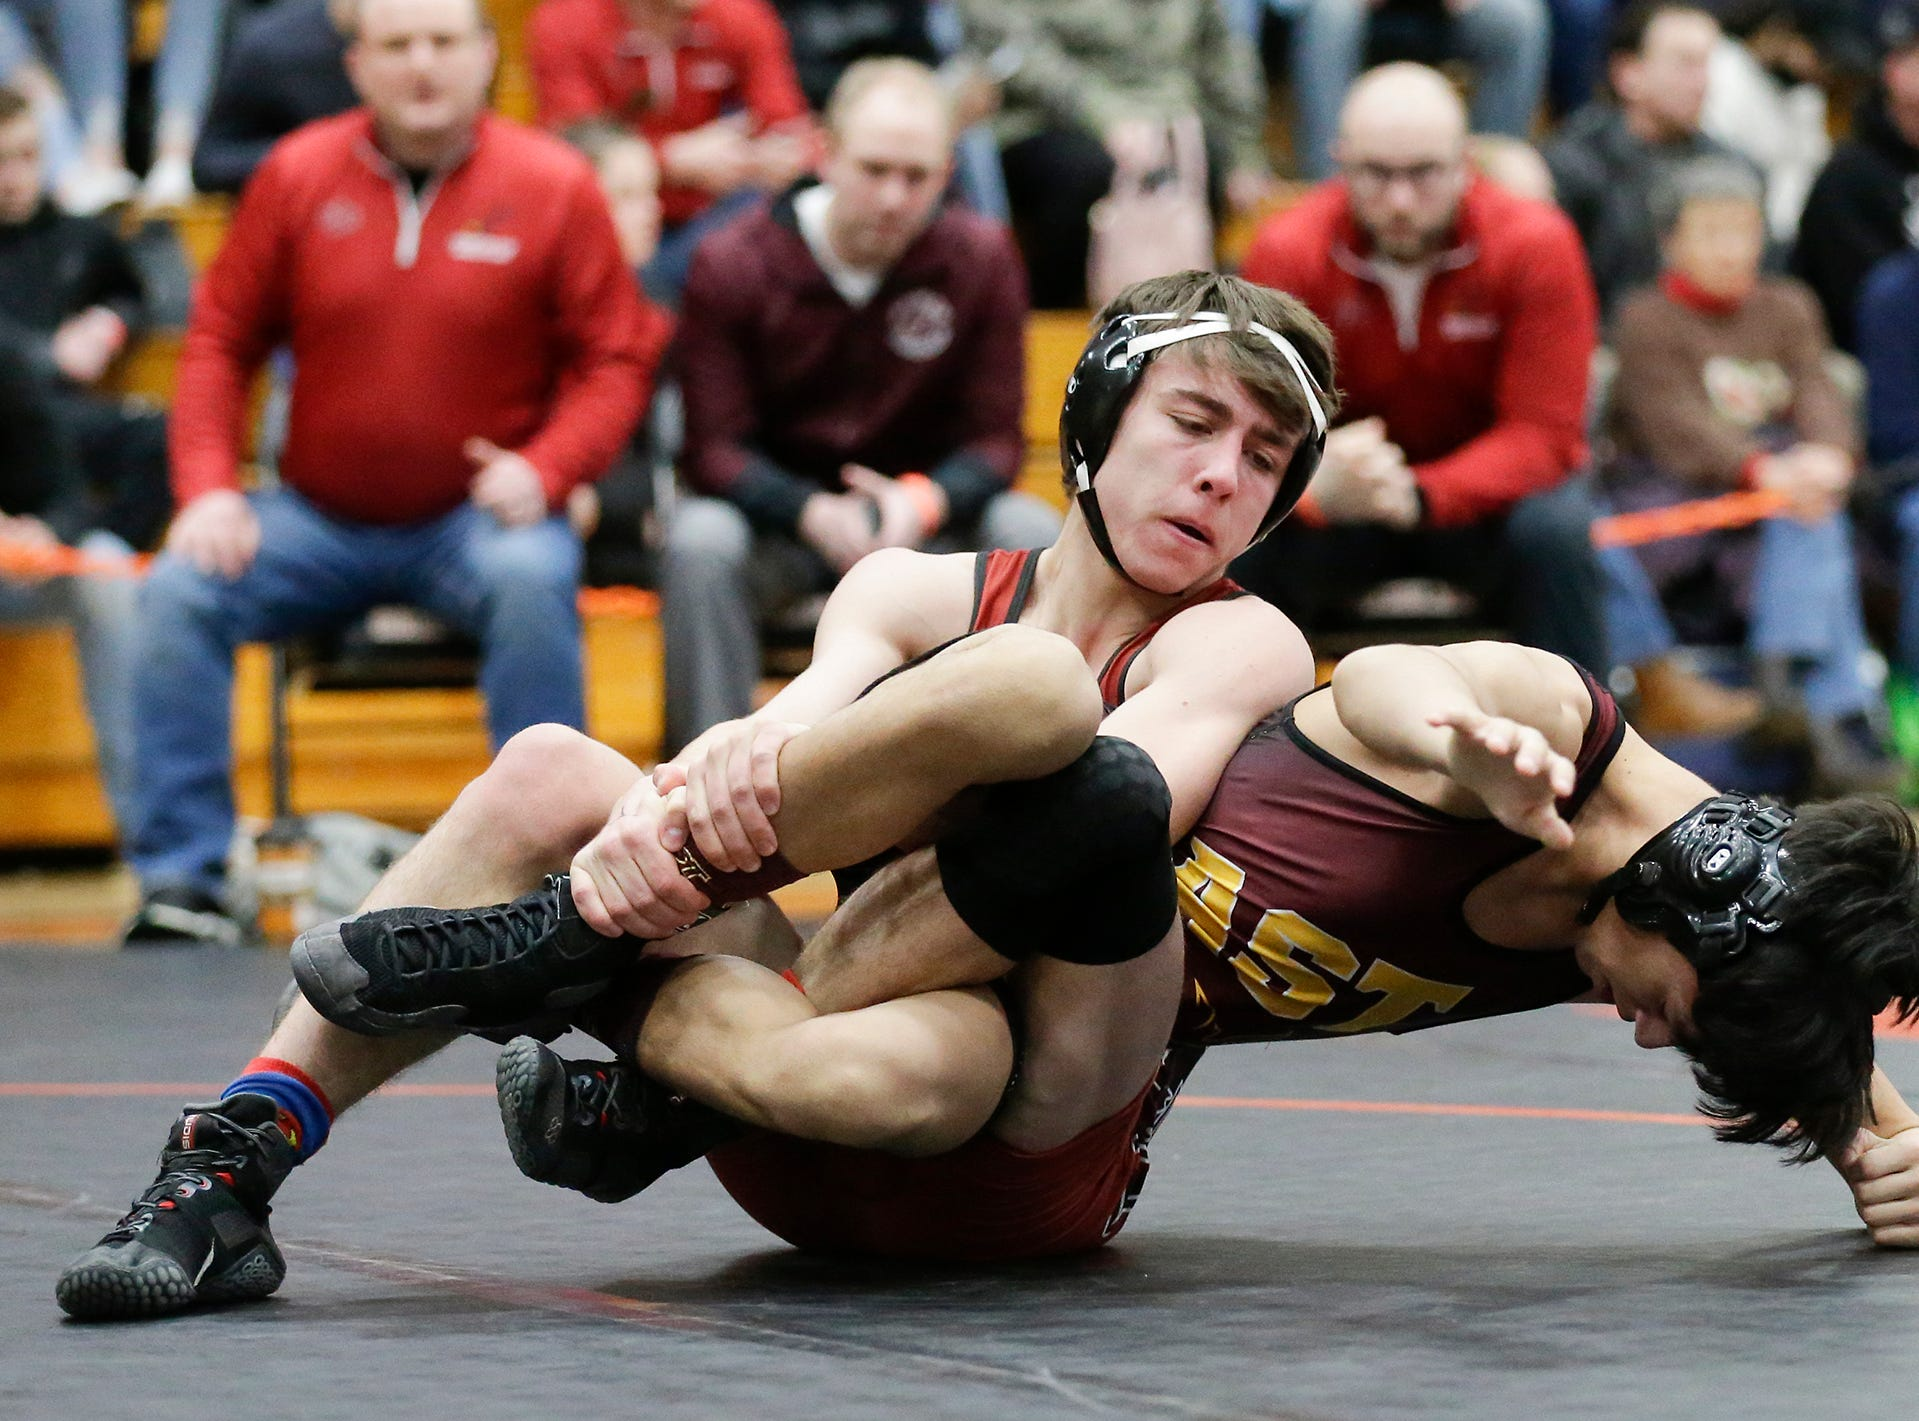 Logan Naker of Fond du Lac High School wrestles Damian Zapata of West Bend East High School in the 145 pound weight class during the WIAA sectionals Saturday, February 16, 2019 in Hartford, Wis. Zapata won with a pin. Doug Raflik/USA TODAY NETWORK-Wisconsin